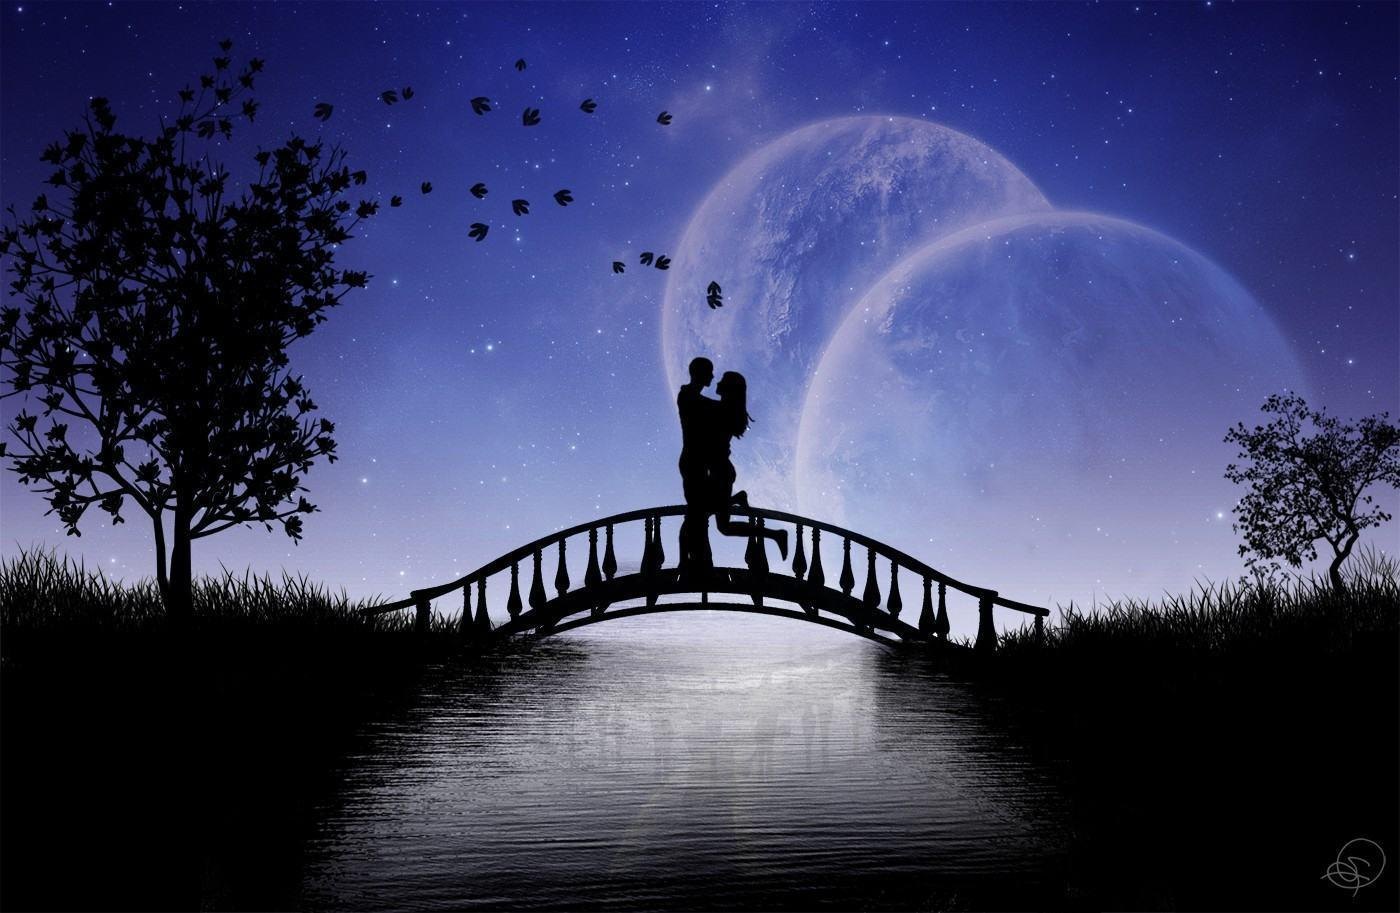 Love couple Wallpaper For Desktop : Romantic couples Wallpapers - Wallpaper cave